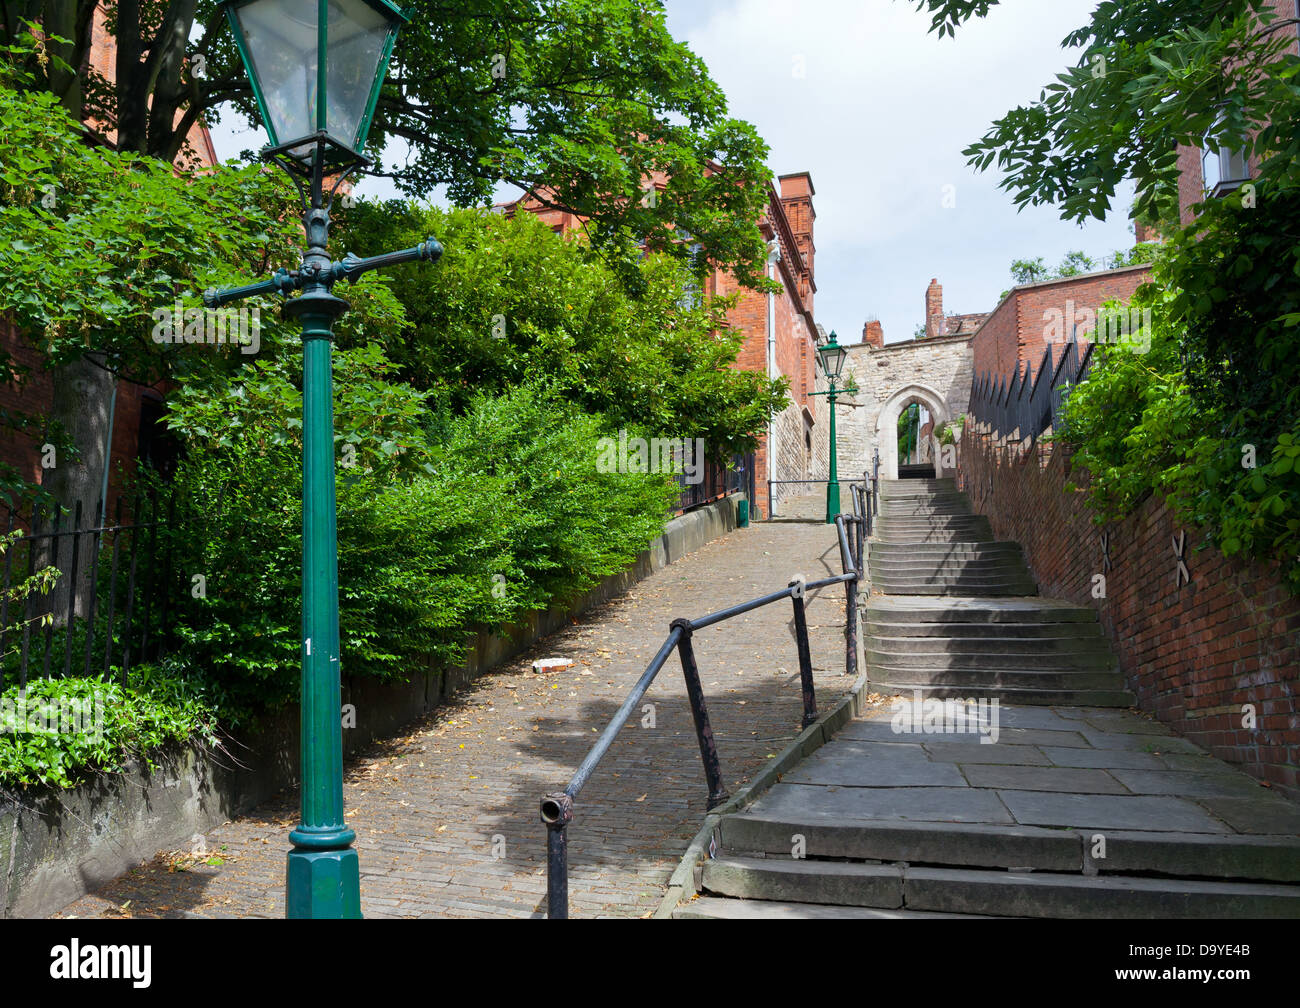 Lincoln - Greestone stairs; Lincoln, Lincolnshire, UK, Europe - Stock Image